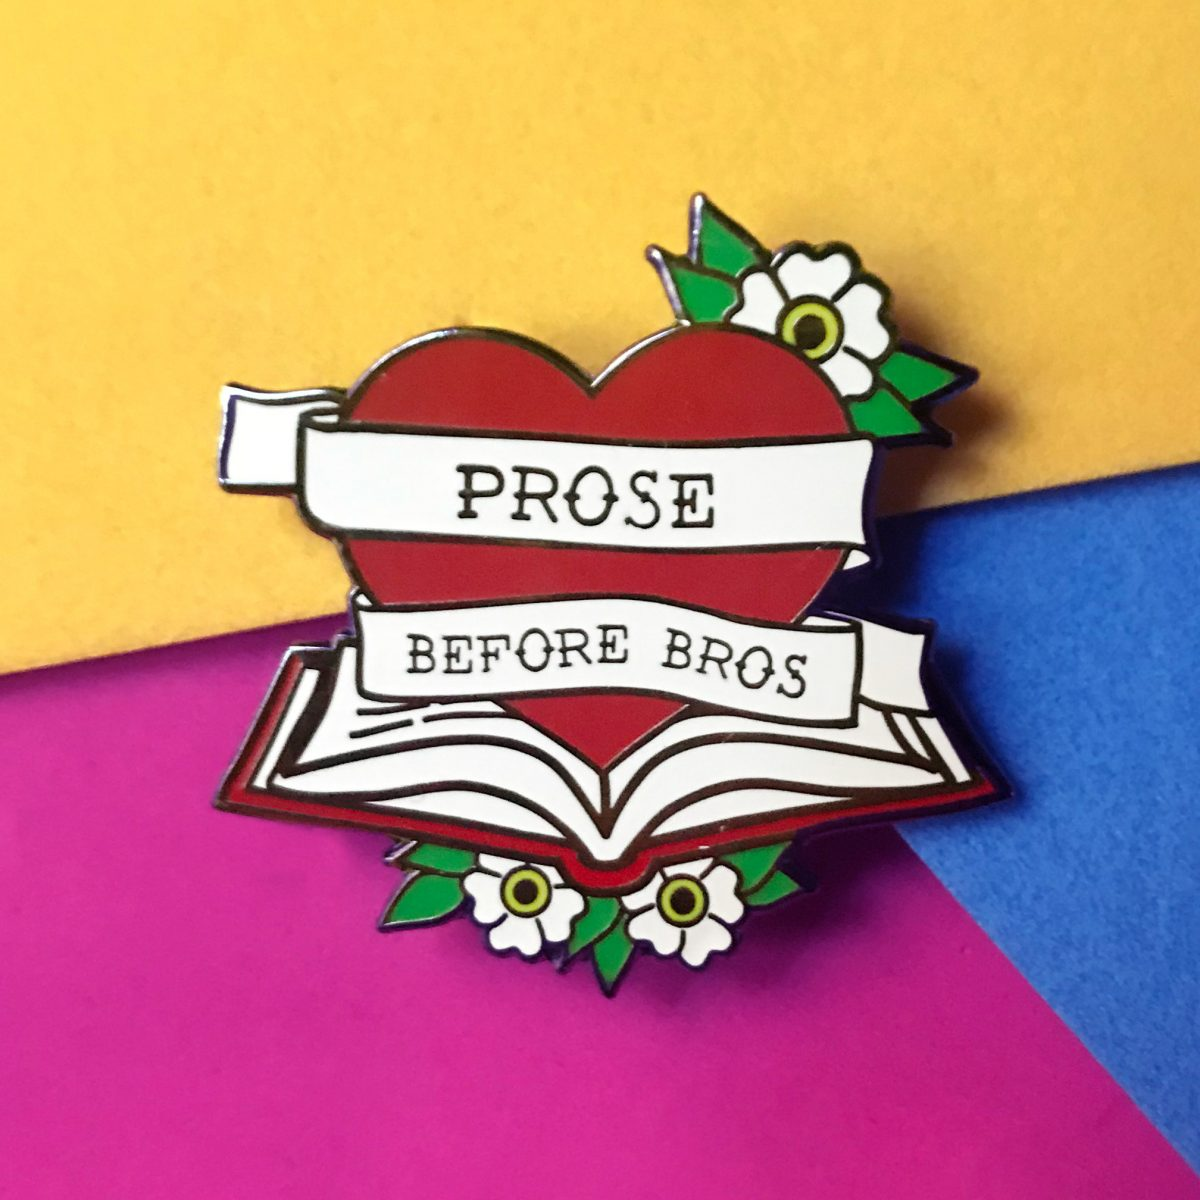 """Prose Before Bros"" -  Bookish & Bakewell"